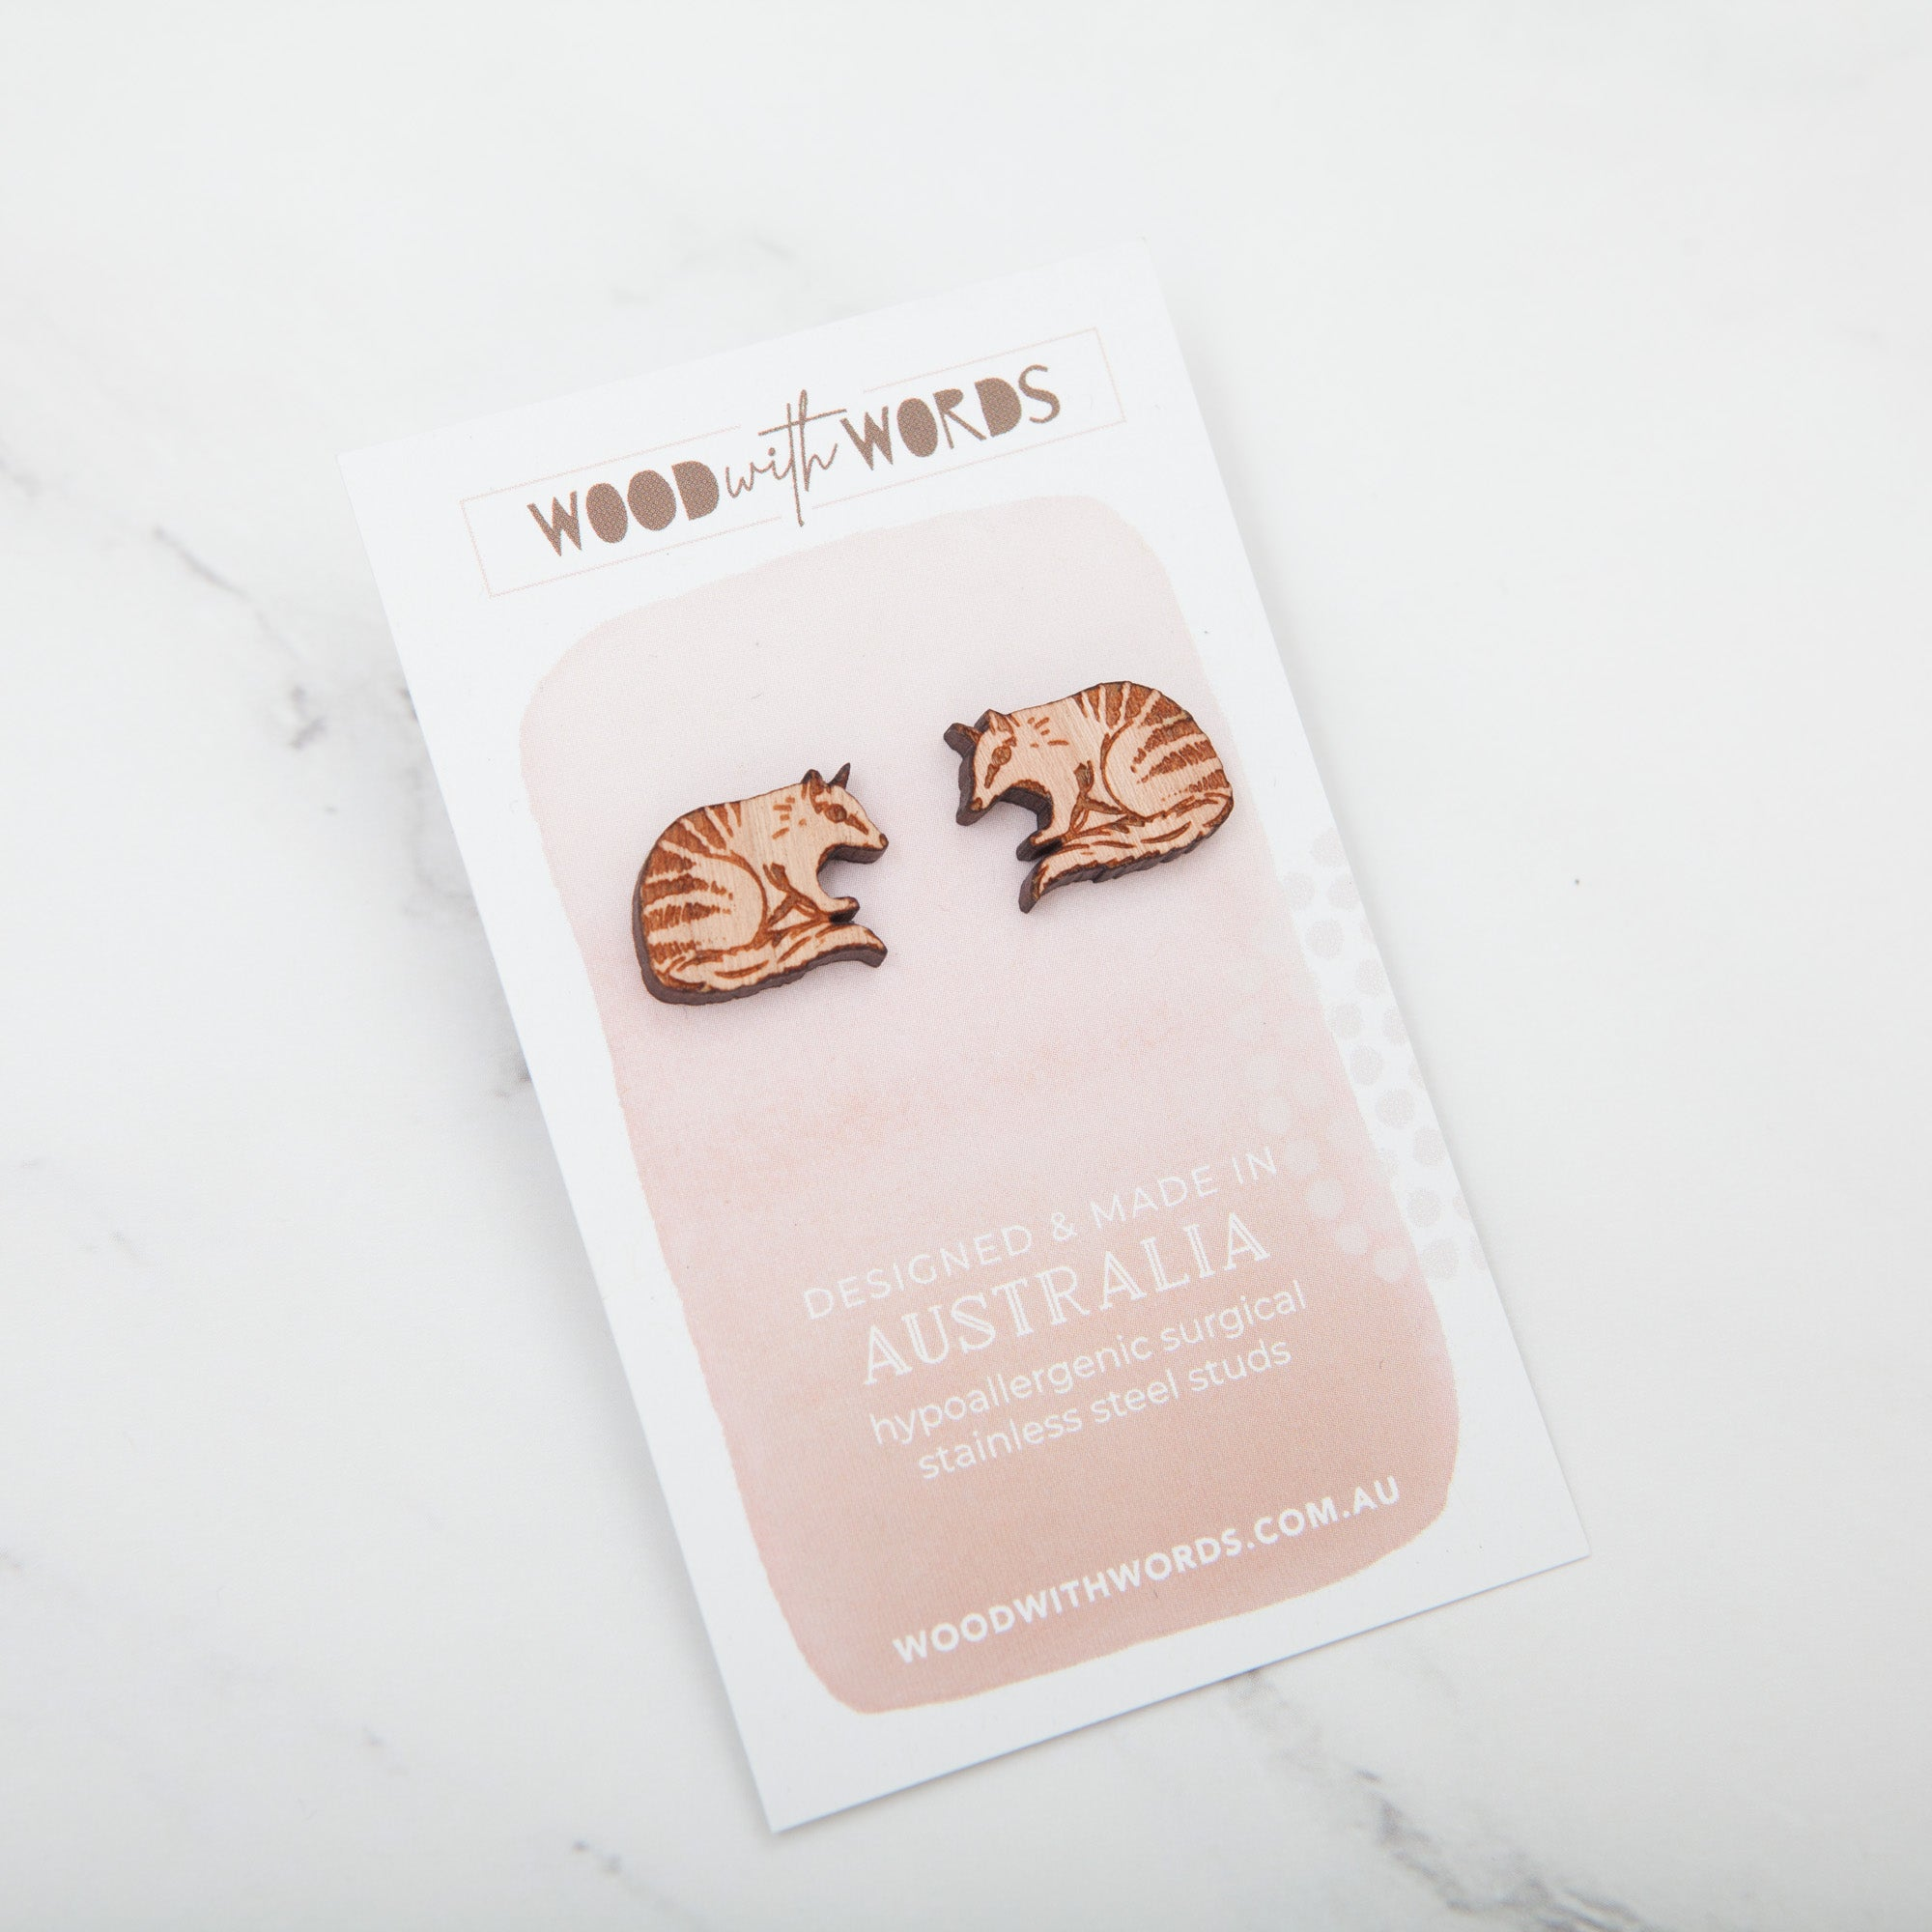 Numbat Wooden Stud Earrings - Wood With Words